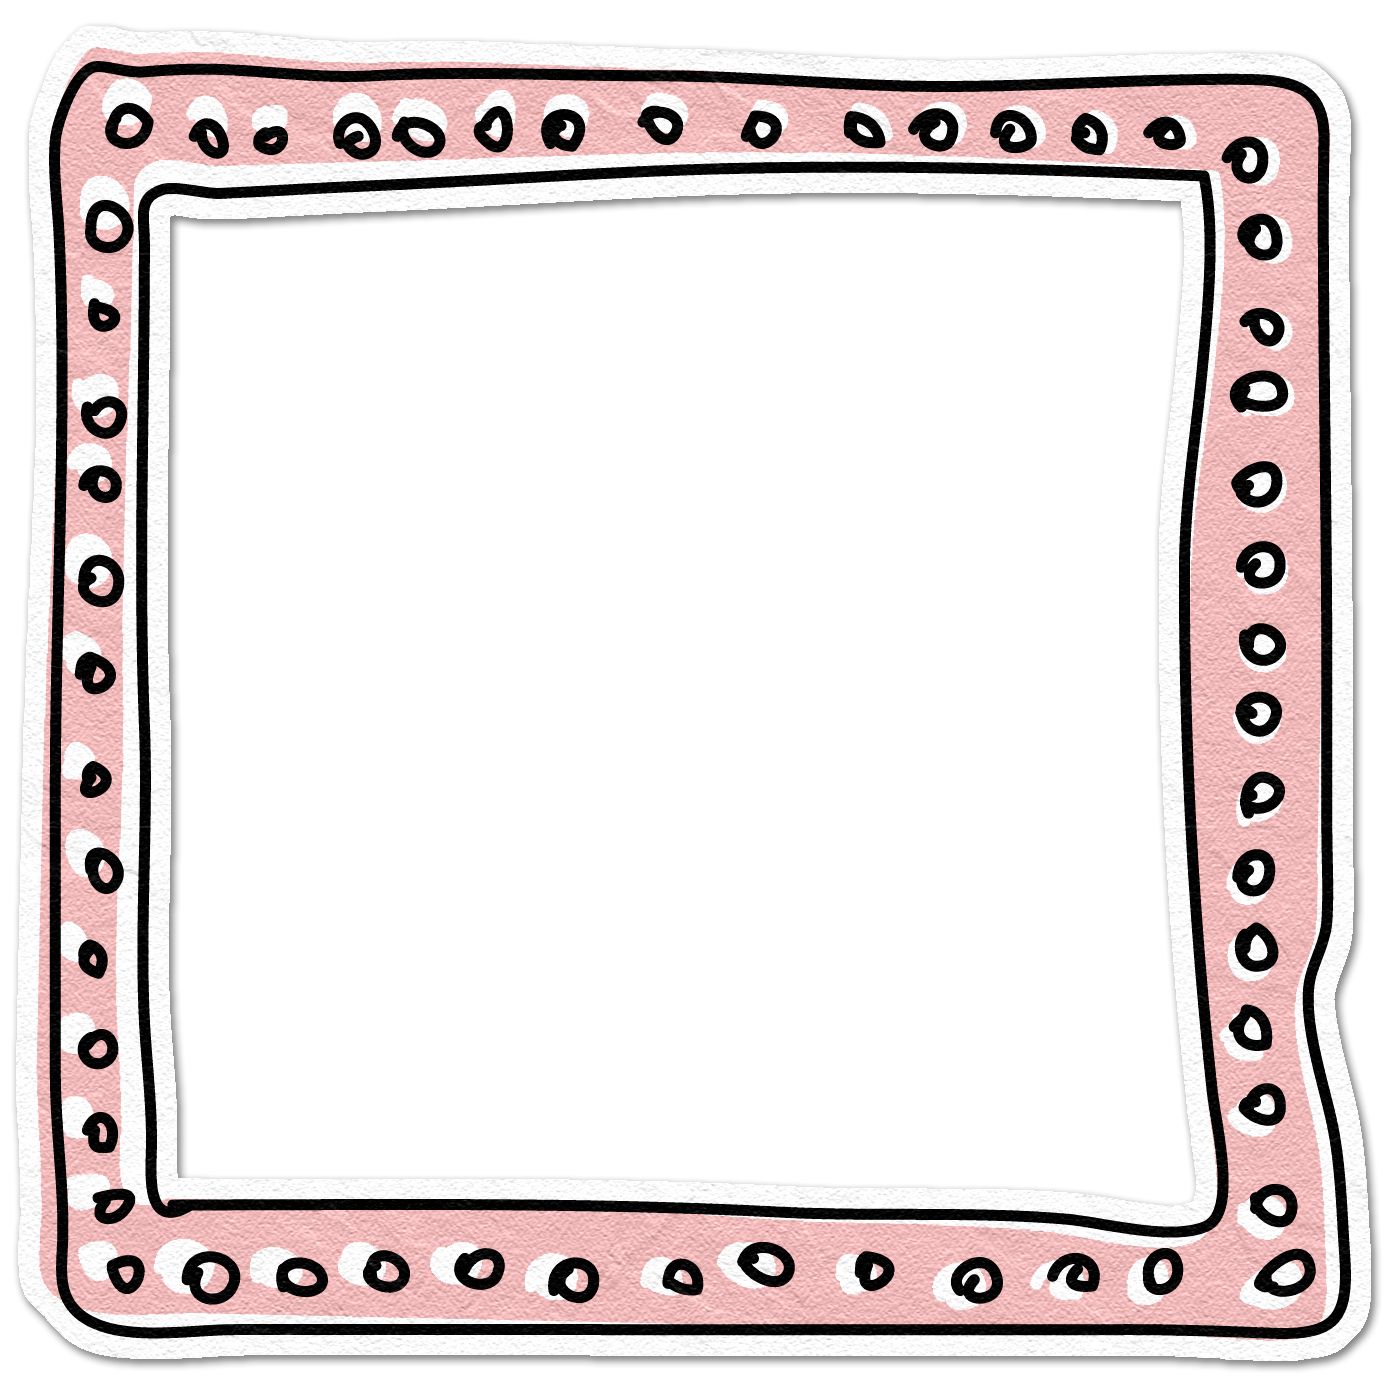 Doodle frame png. Yellow element doodledpinkframe jun